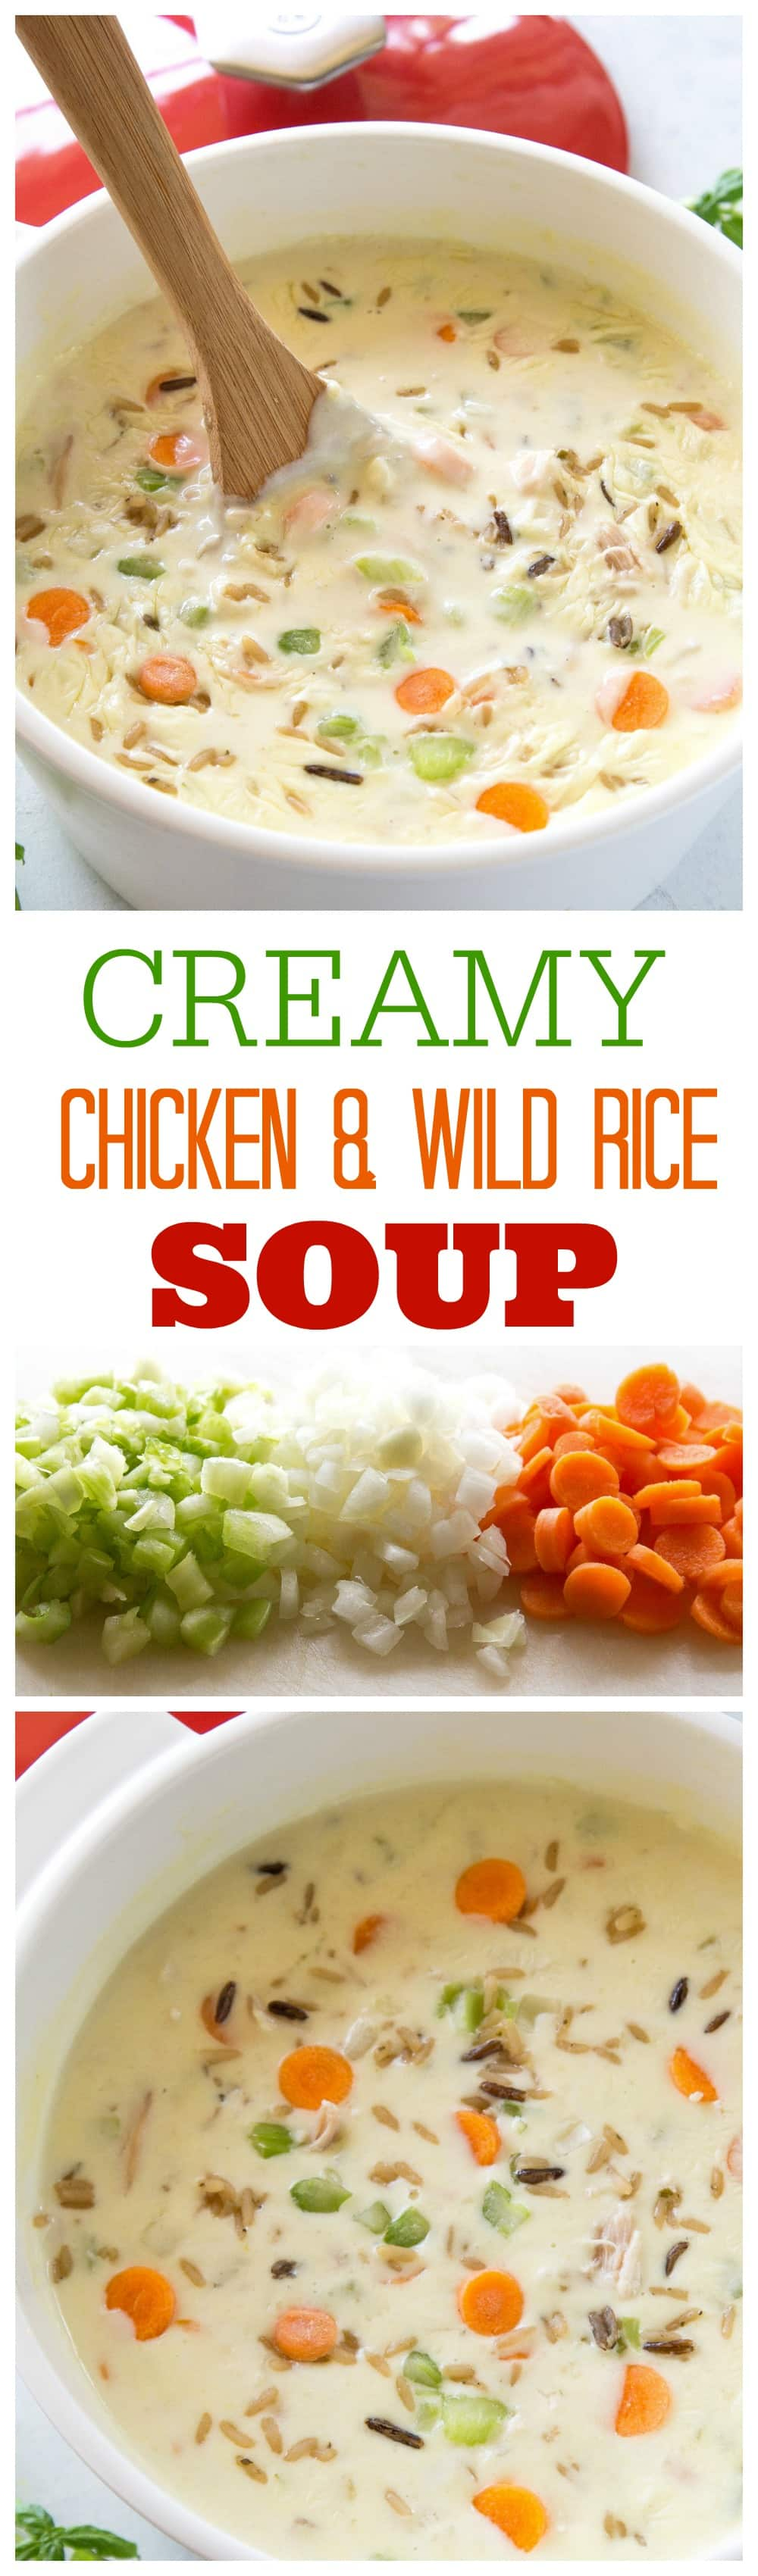 Creamy Chicken and Wild Rice Soup - nothing beats warm soup on a cold day. #creamy #chicken #wild #rice #soup #recipe #easy #dinner